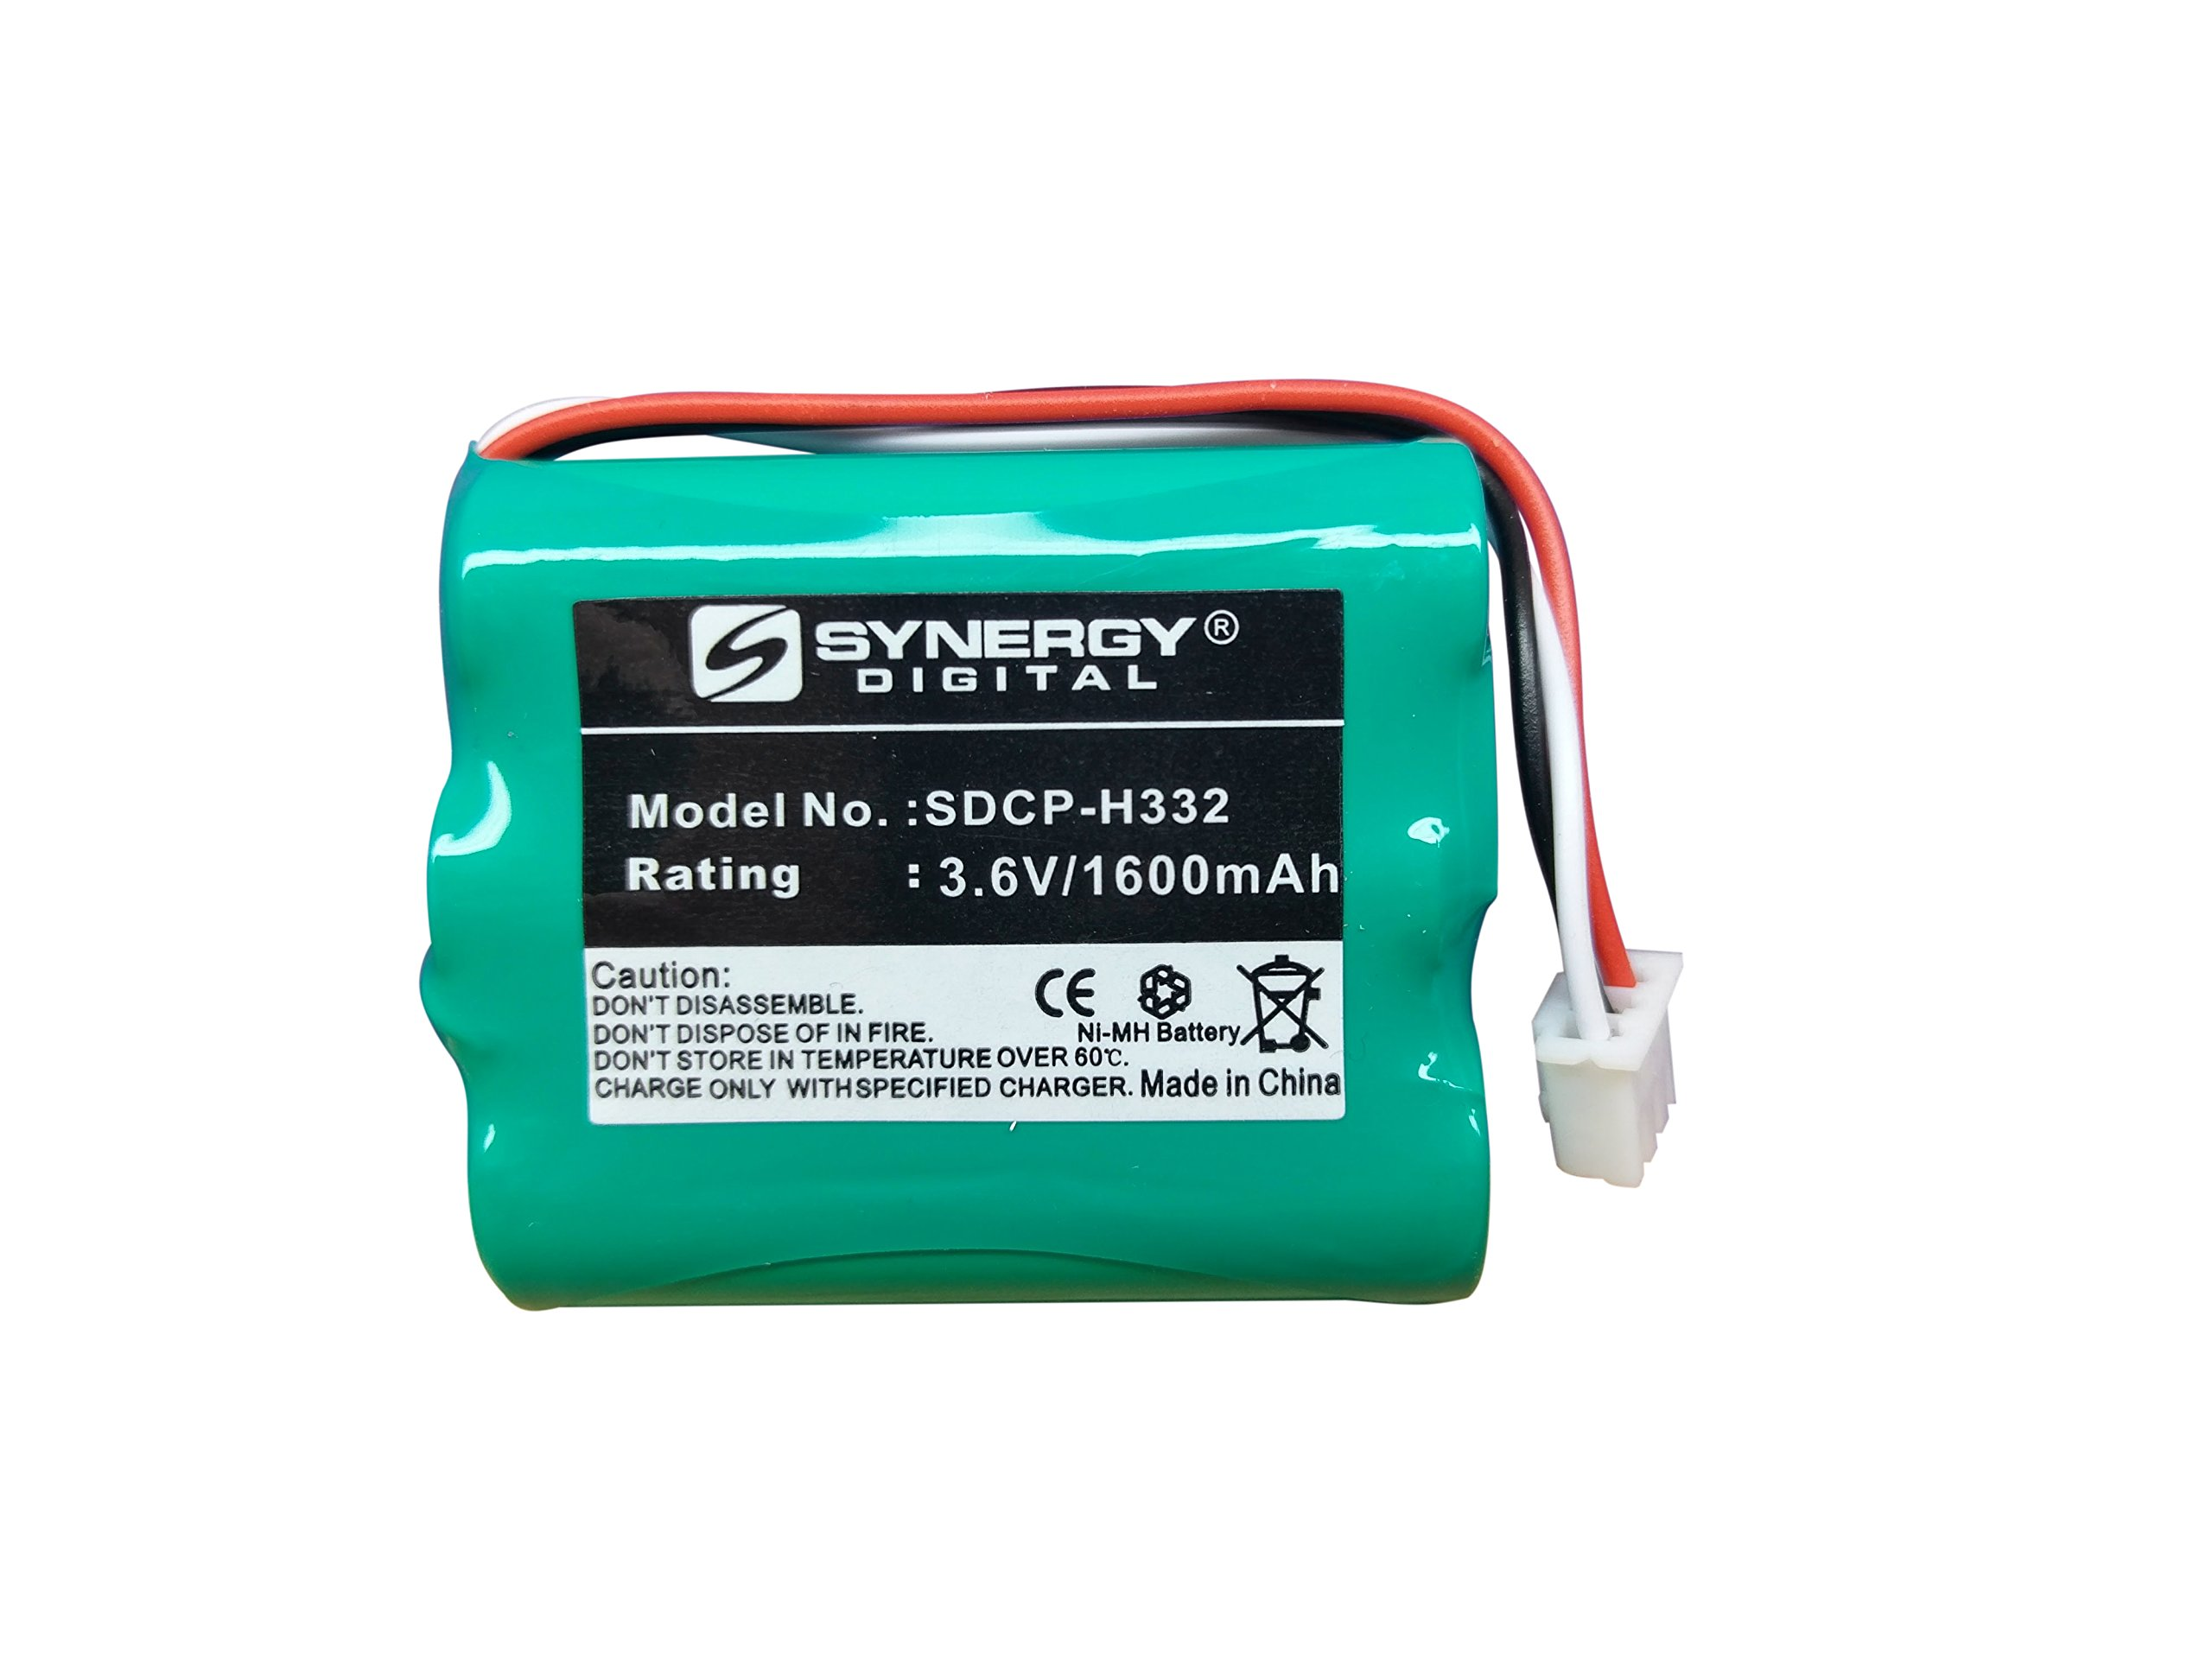 Huawei HOME PHONE CONNECT Cordless Phone Battery NiMh, 3.6 Volt, 1600 mAh, Replacement Battery for Huawei HGB-15AAX3 Cordless Phone Battery by Synergy Digital